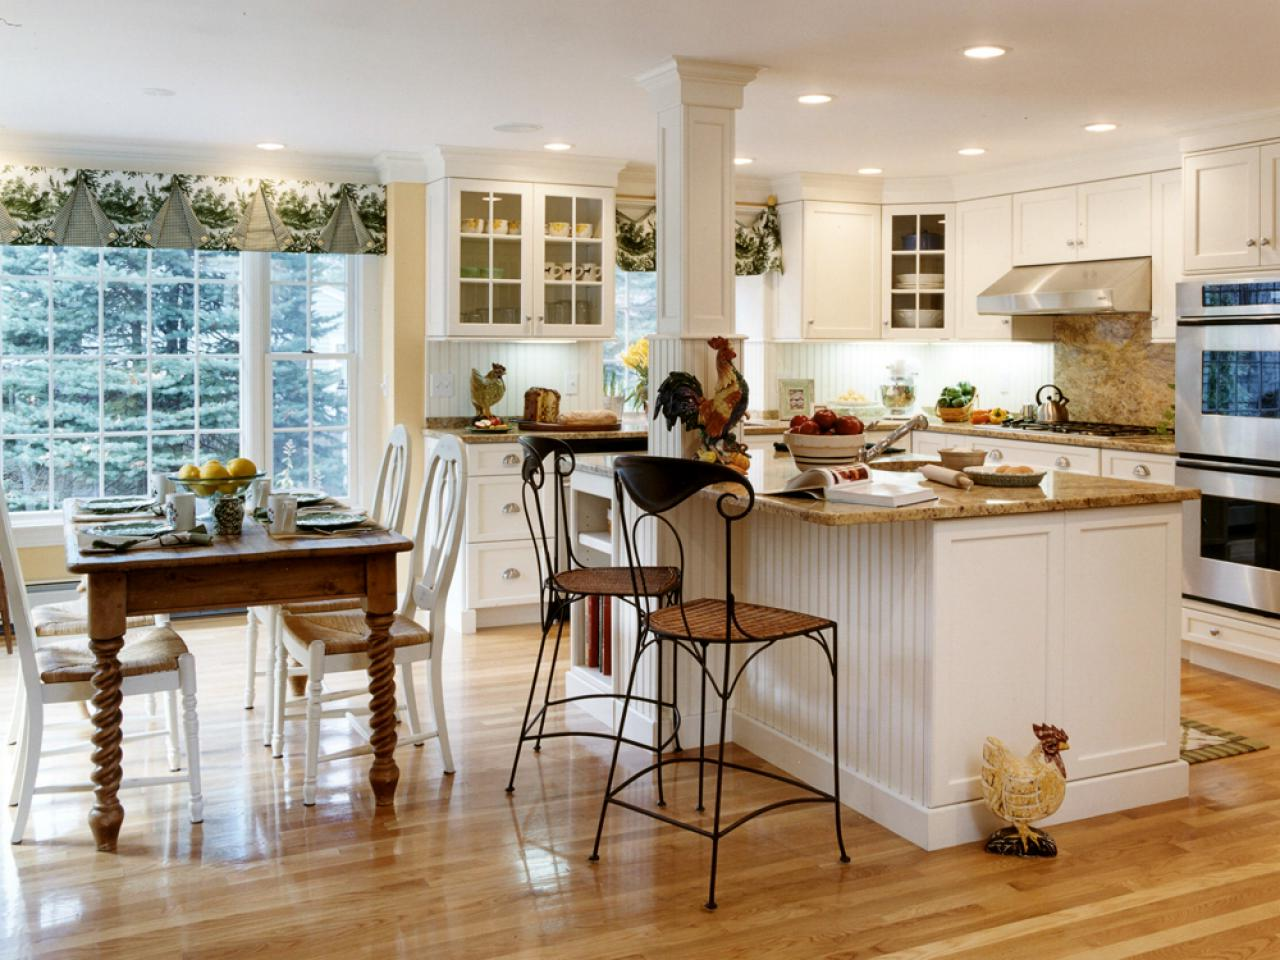 Kitchen design images  Kitchen in country style with wooden floors, wooden  table, kitchen